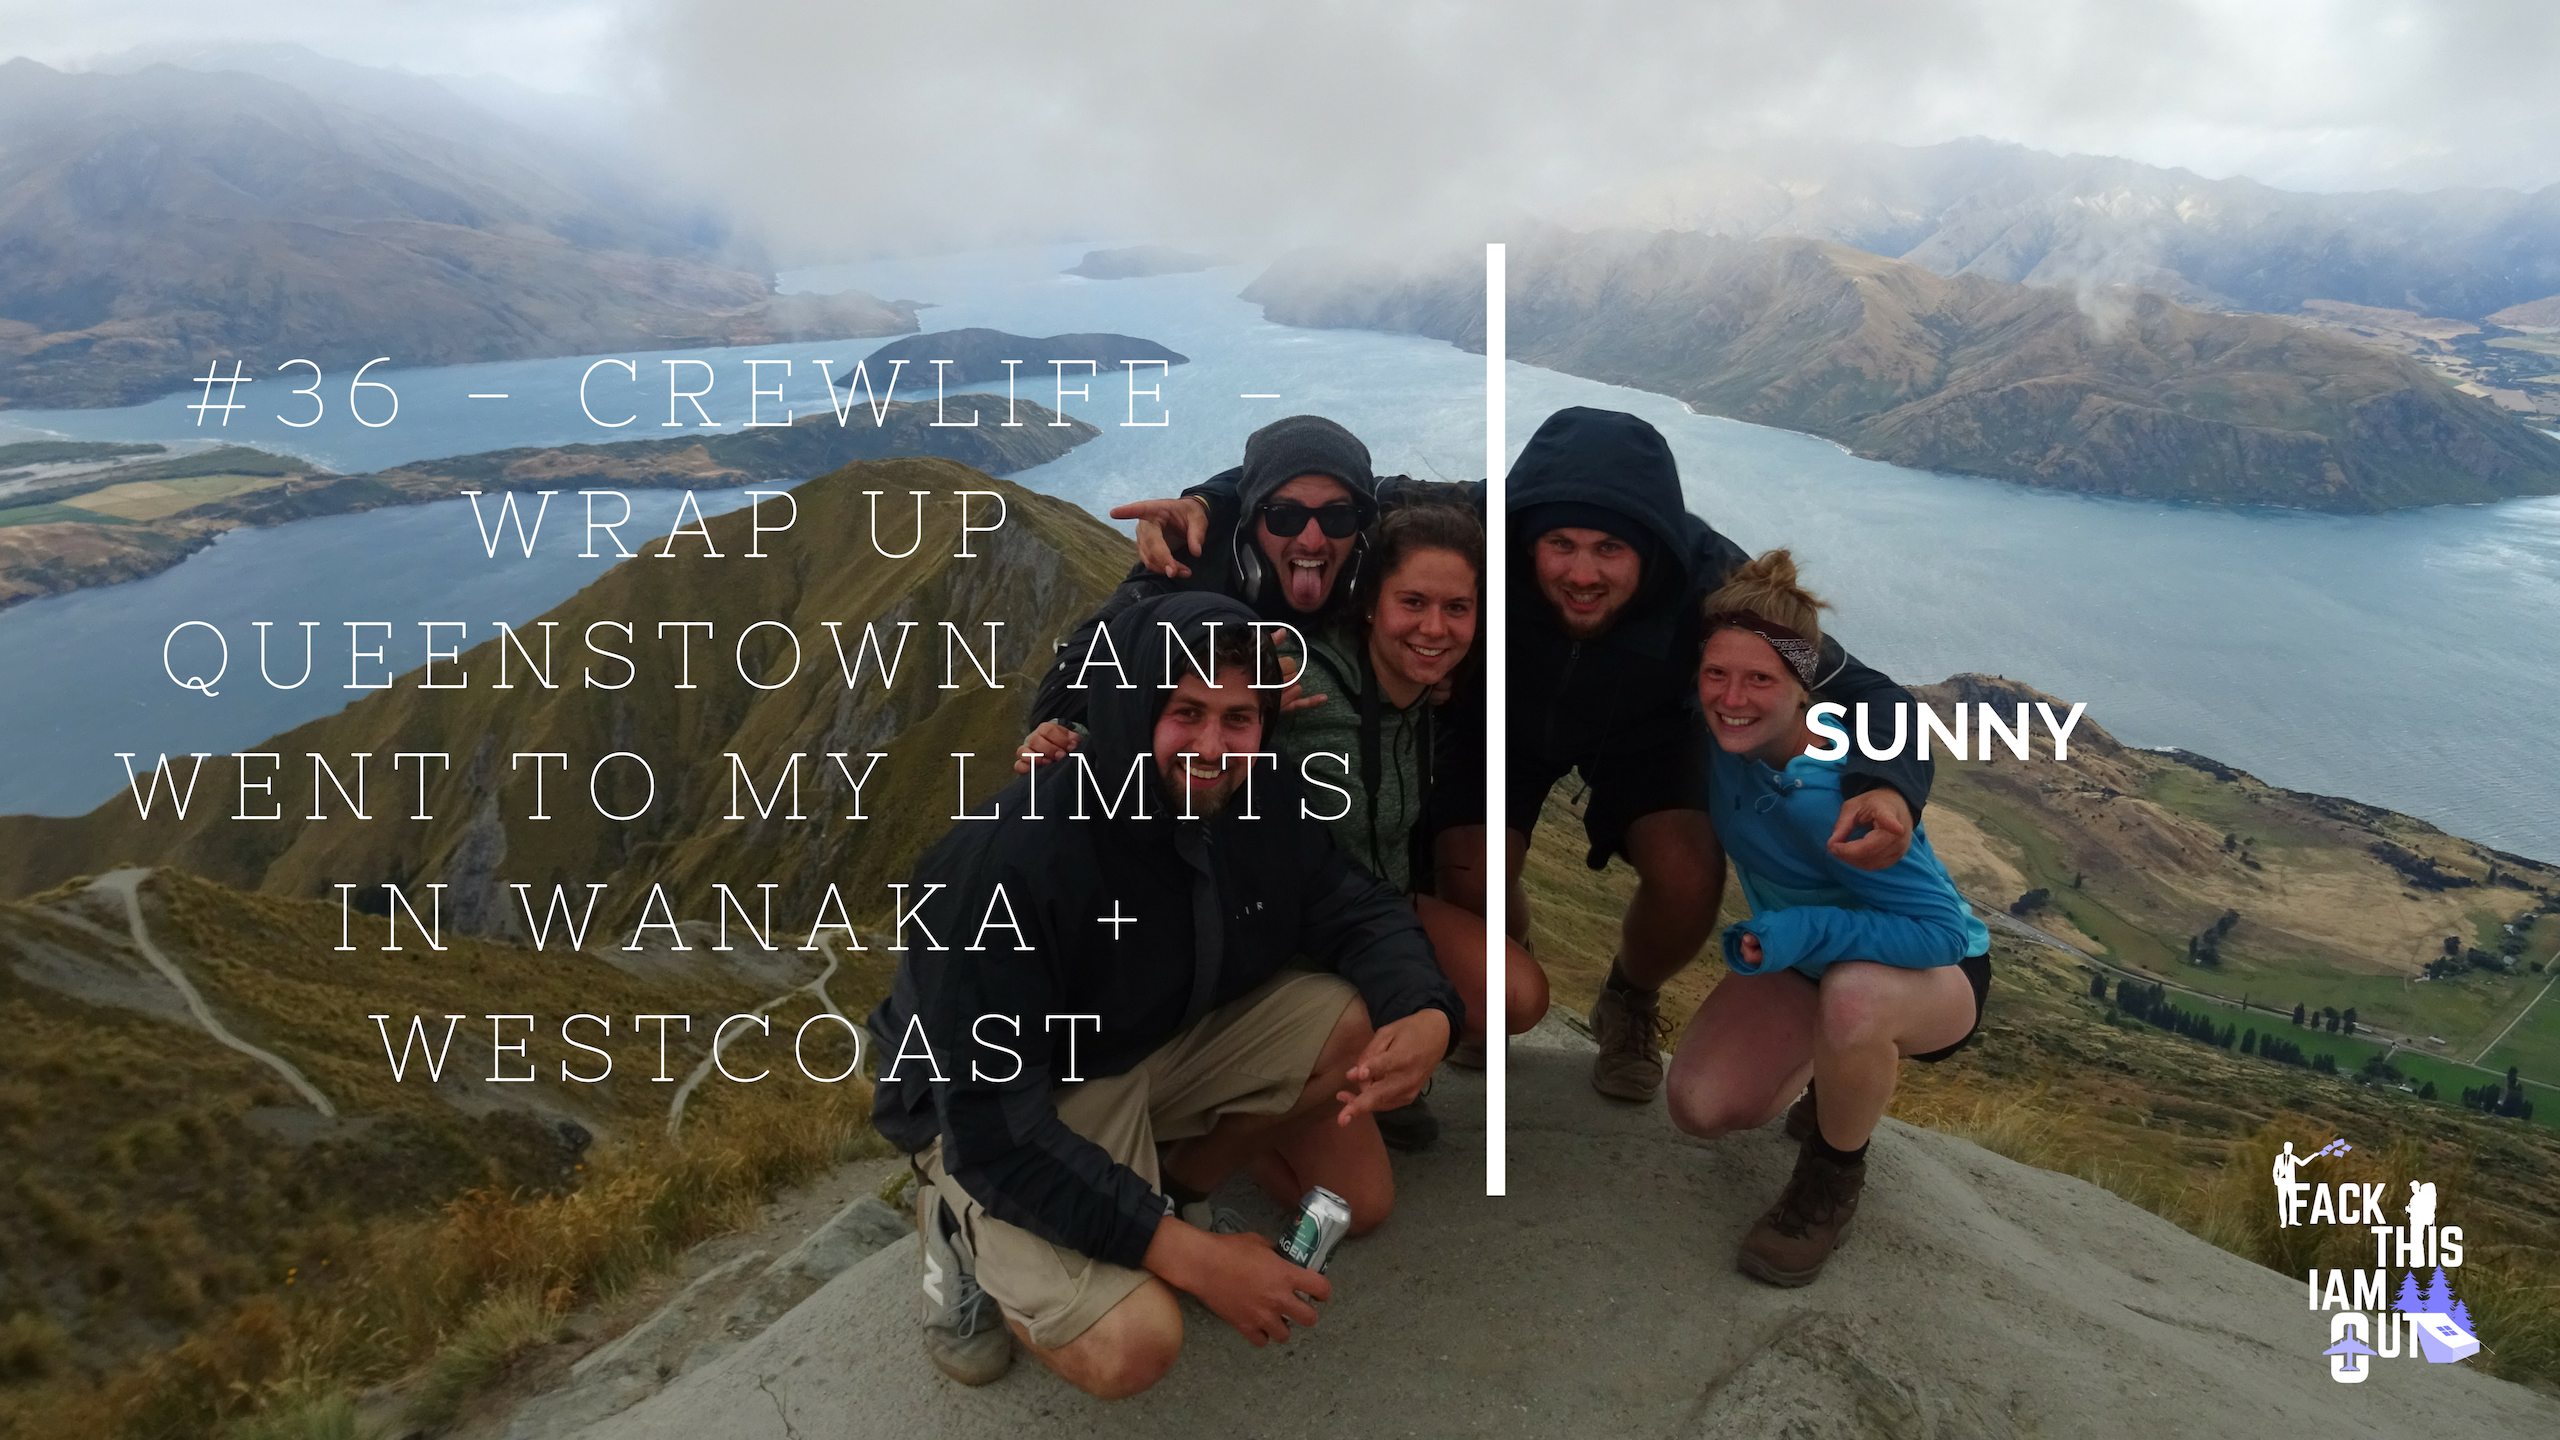 #36 – CREWLIFE – WRAP UP QUEENSTOWN AND WENT TO MY LIMITS IN WANAKA + WESTCOAST